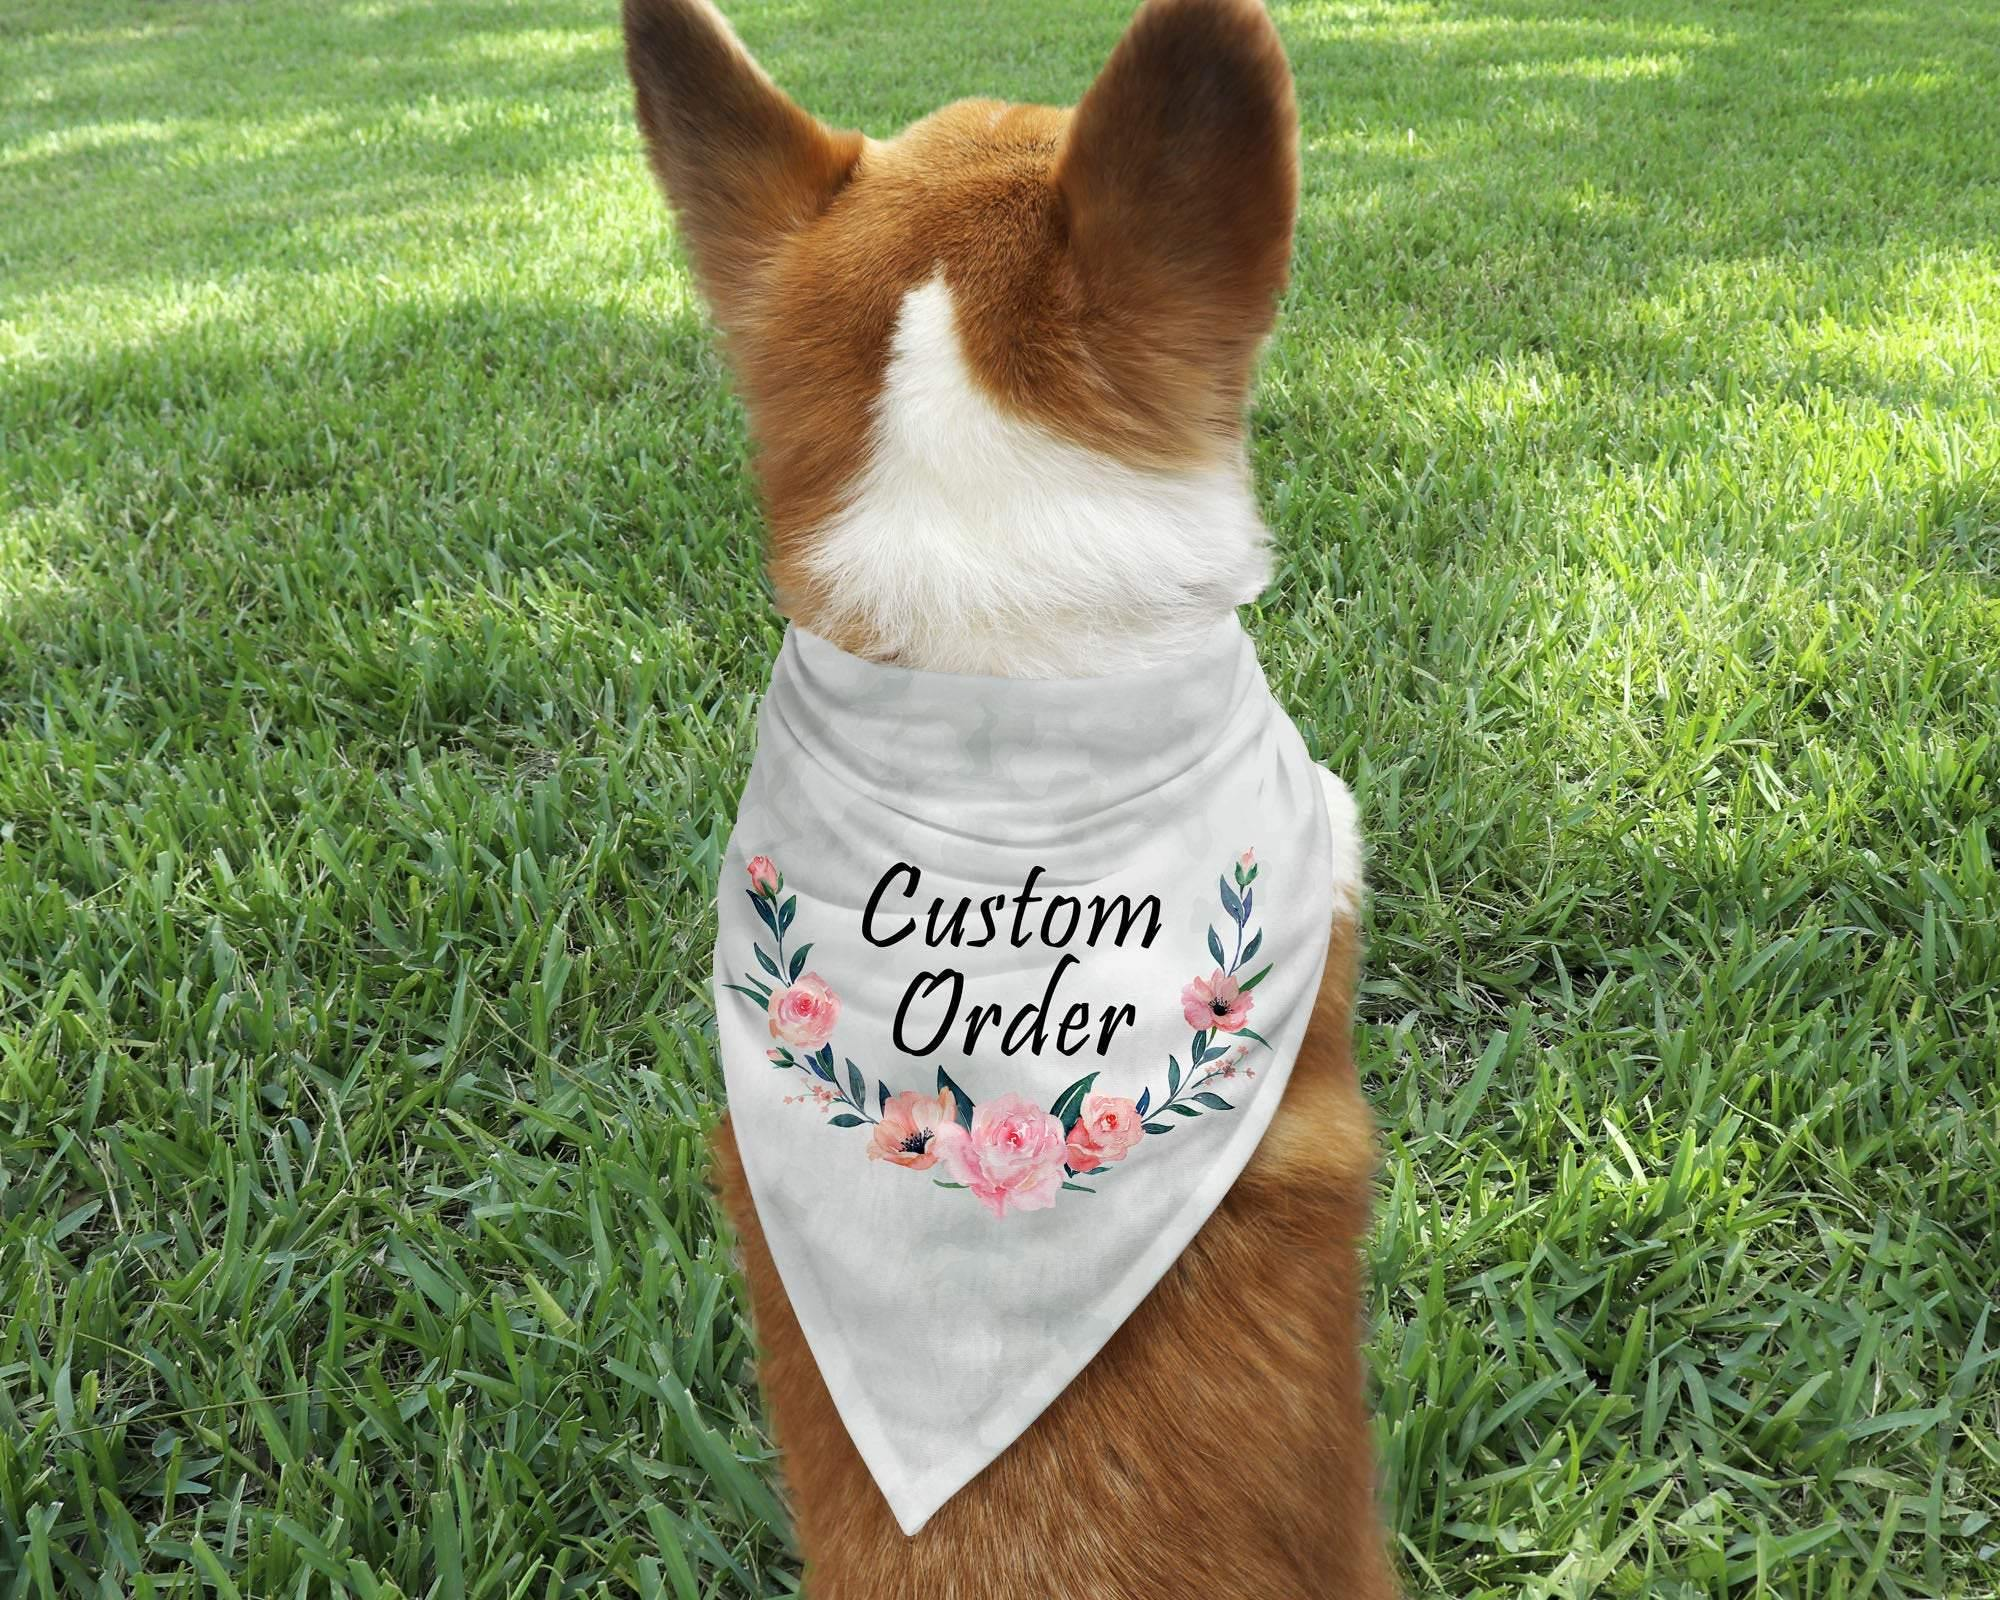 Pet Neckwear | Personalized Pet Bandanna | Custom Pet Bandanna | Pet Accessories | Custom Order | This and That Solutions | Personalized Gifts | Custom Home Décor